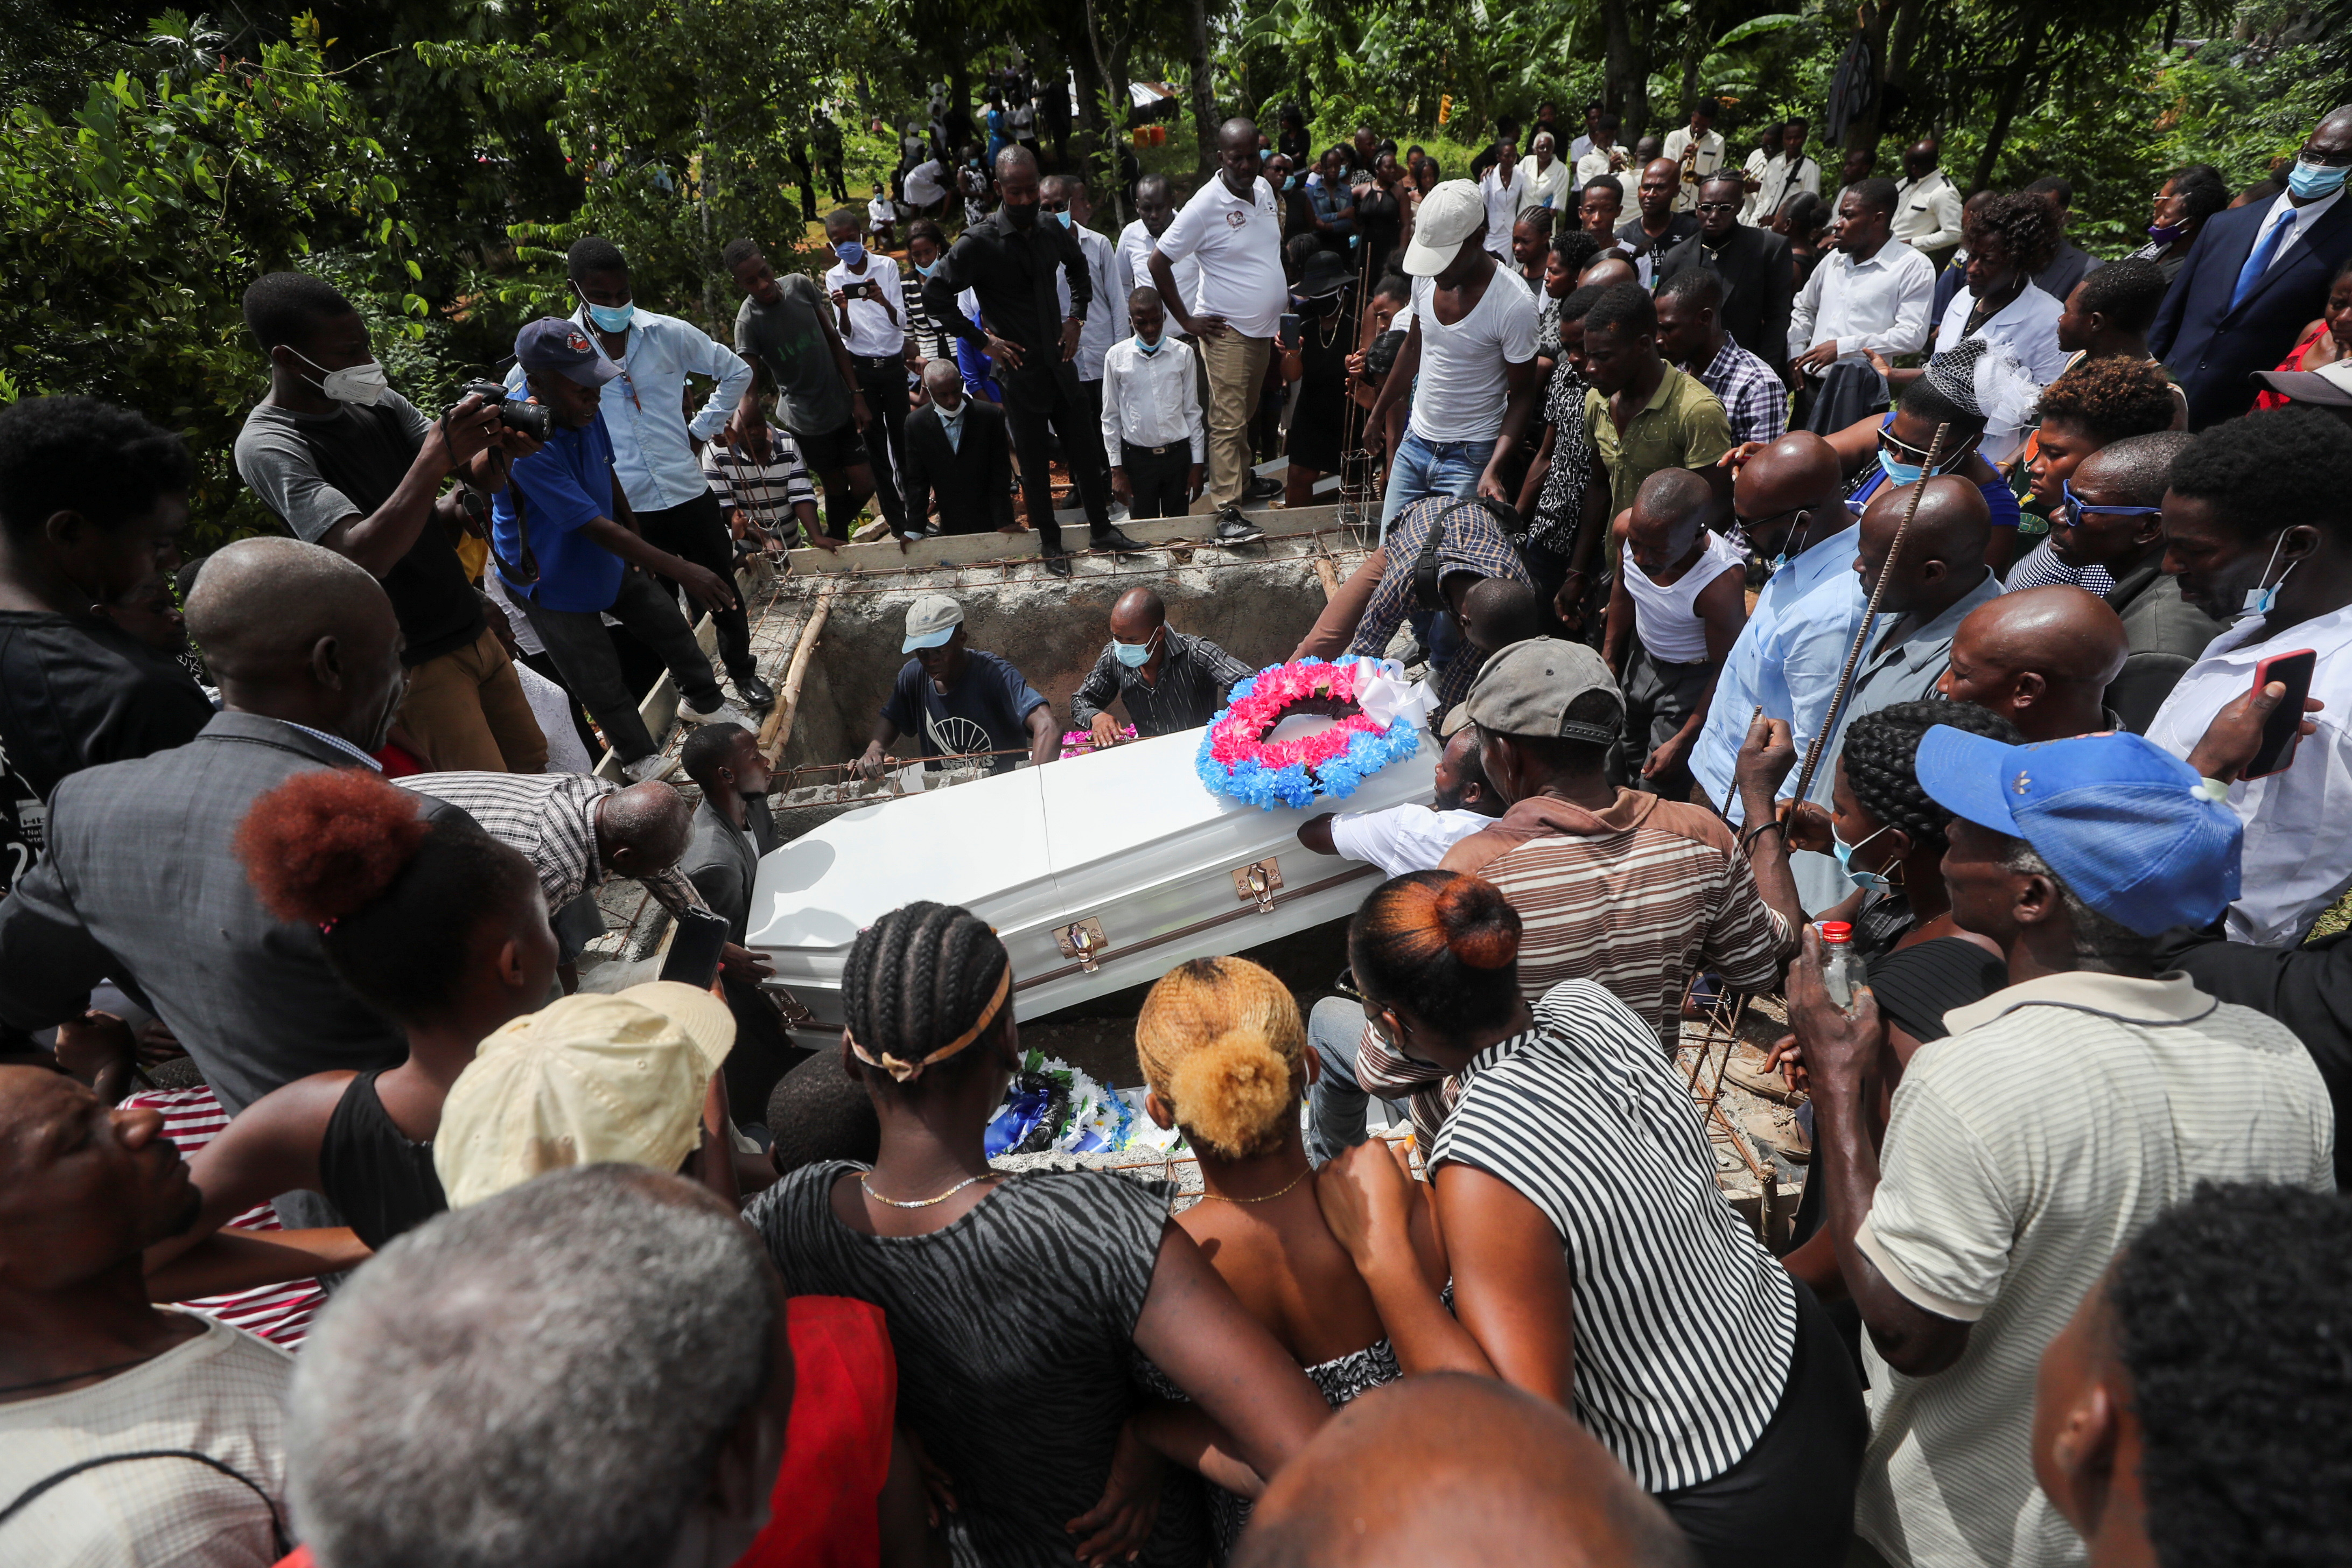 People take part in a funeral after the earthquake that took place on August 14th, in Marceline near Les Cayes, Haiti August 21, 2021. REUTERS/Henry Romero